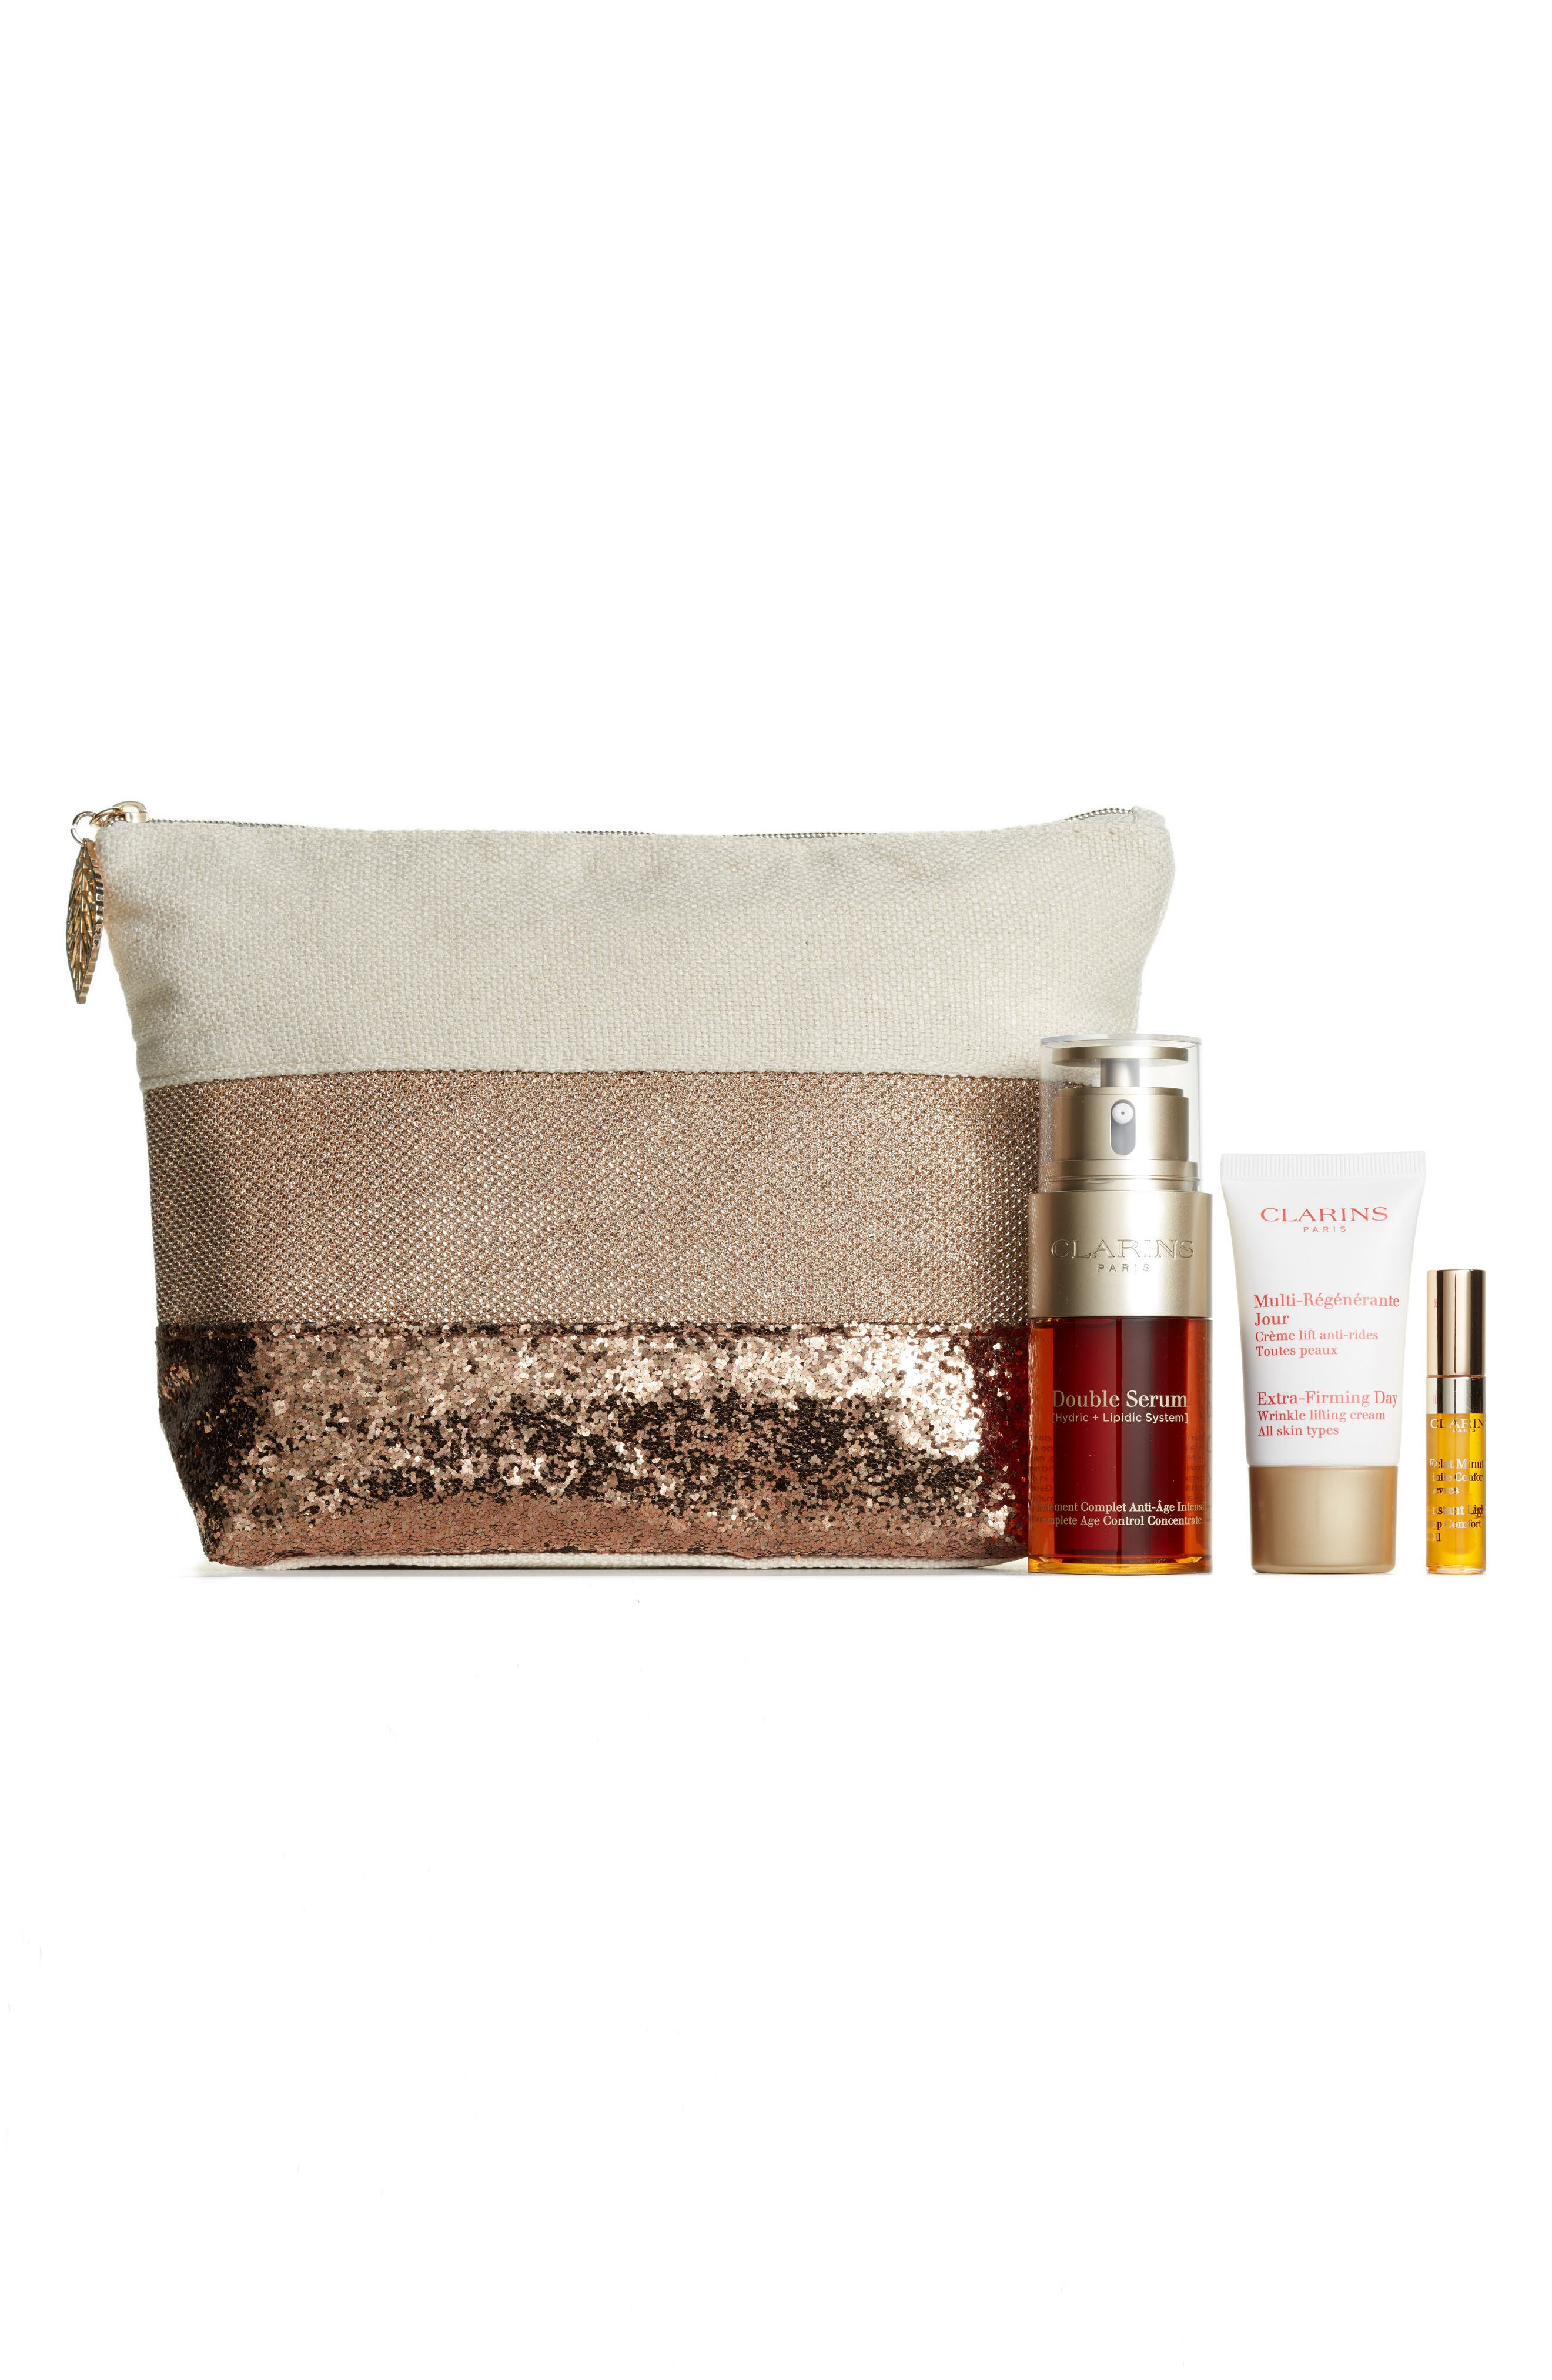 Extra Firming Double Serum Set,                         Main,                         color, 000